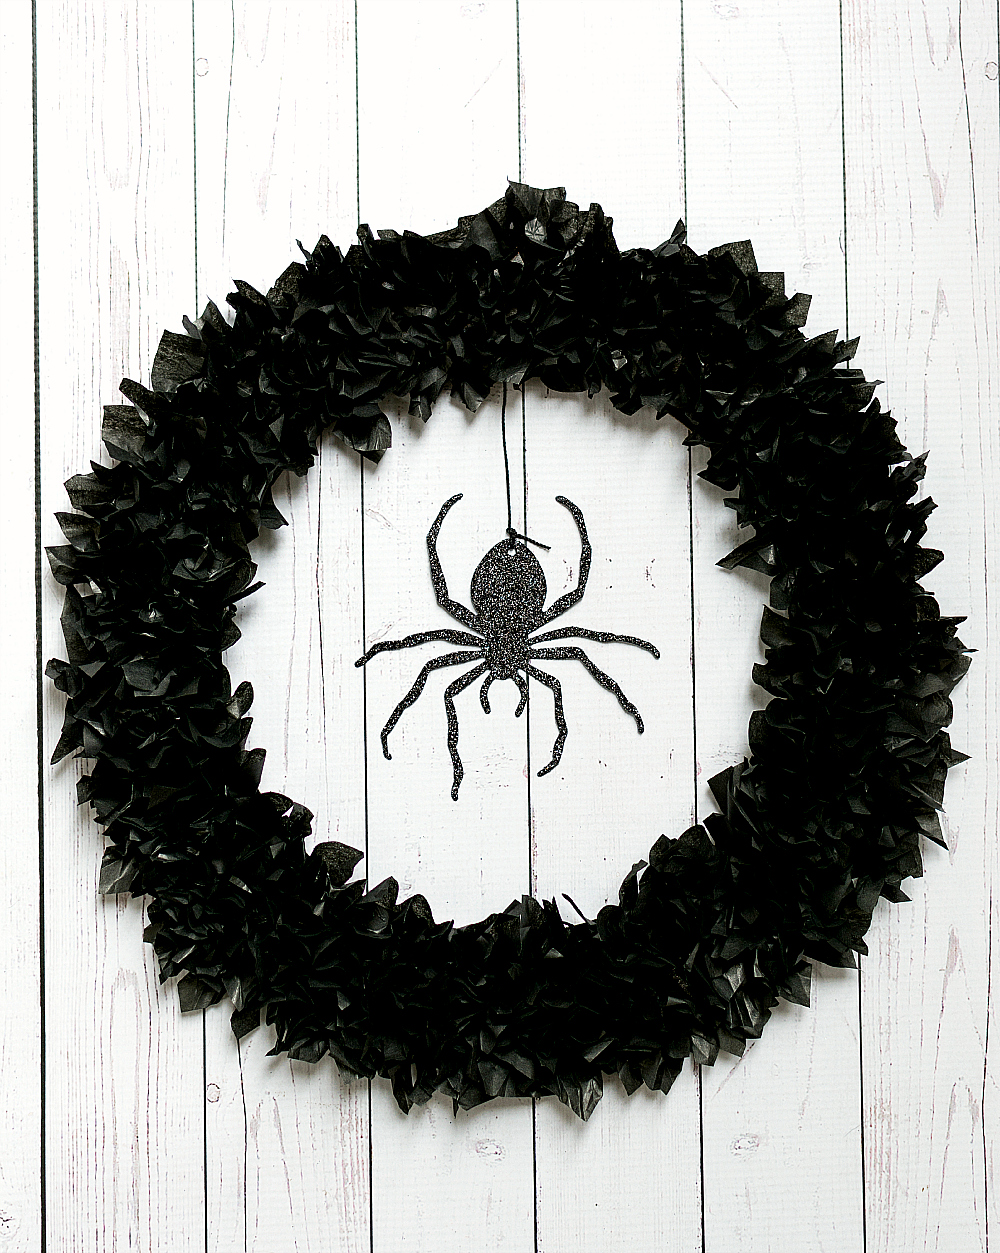 Halloween Wreath Ideas: Spider Wreath with Tissue Paper